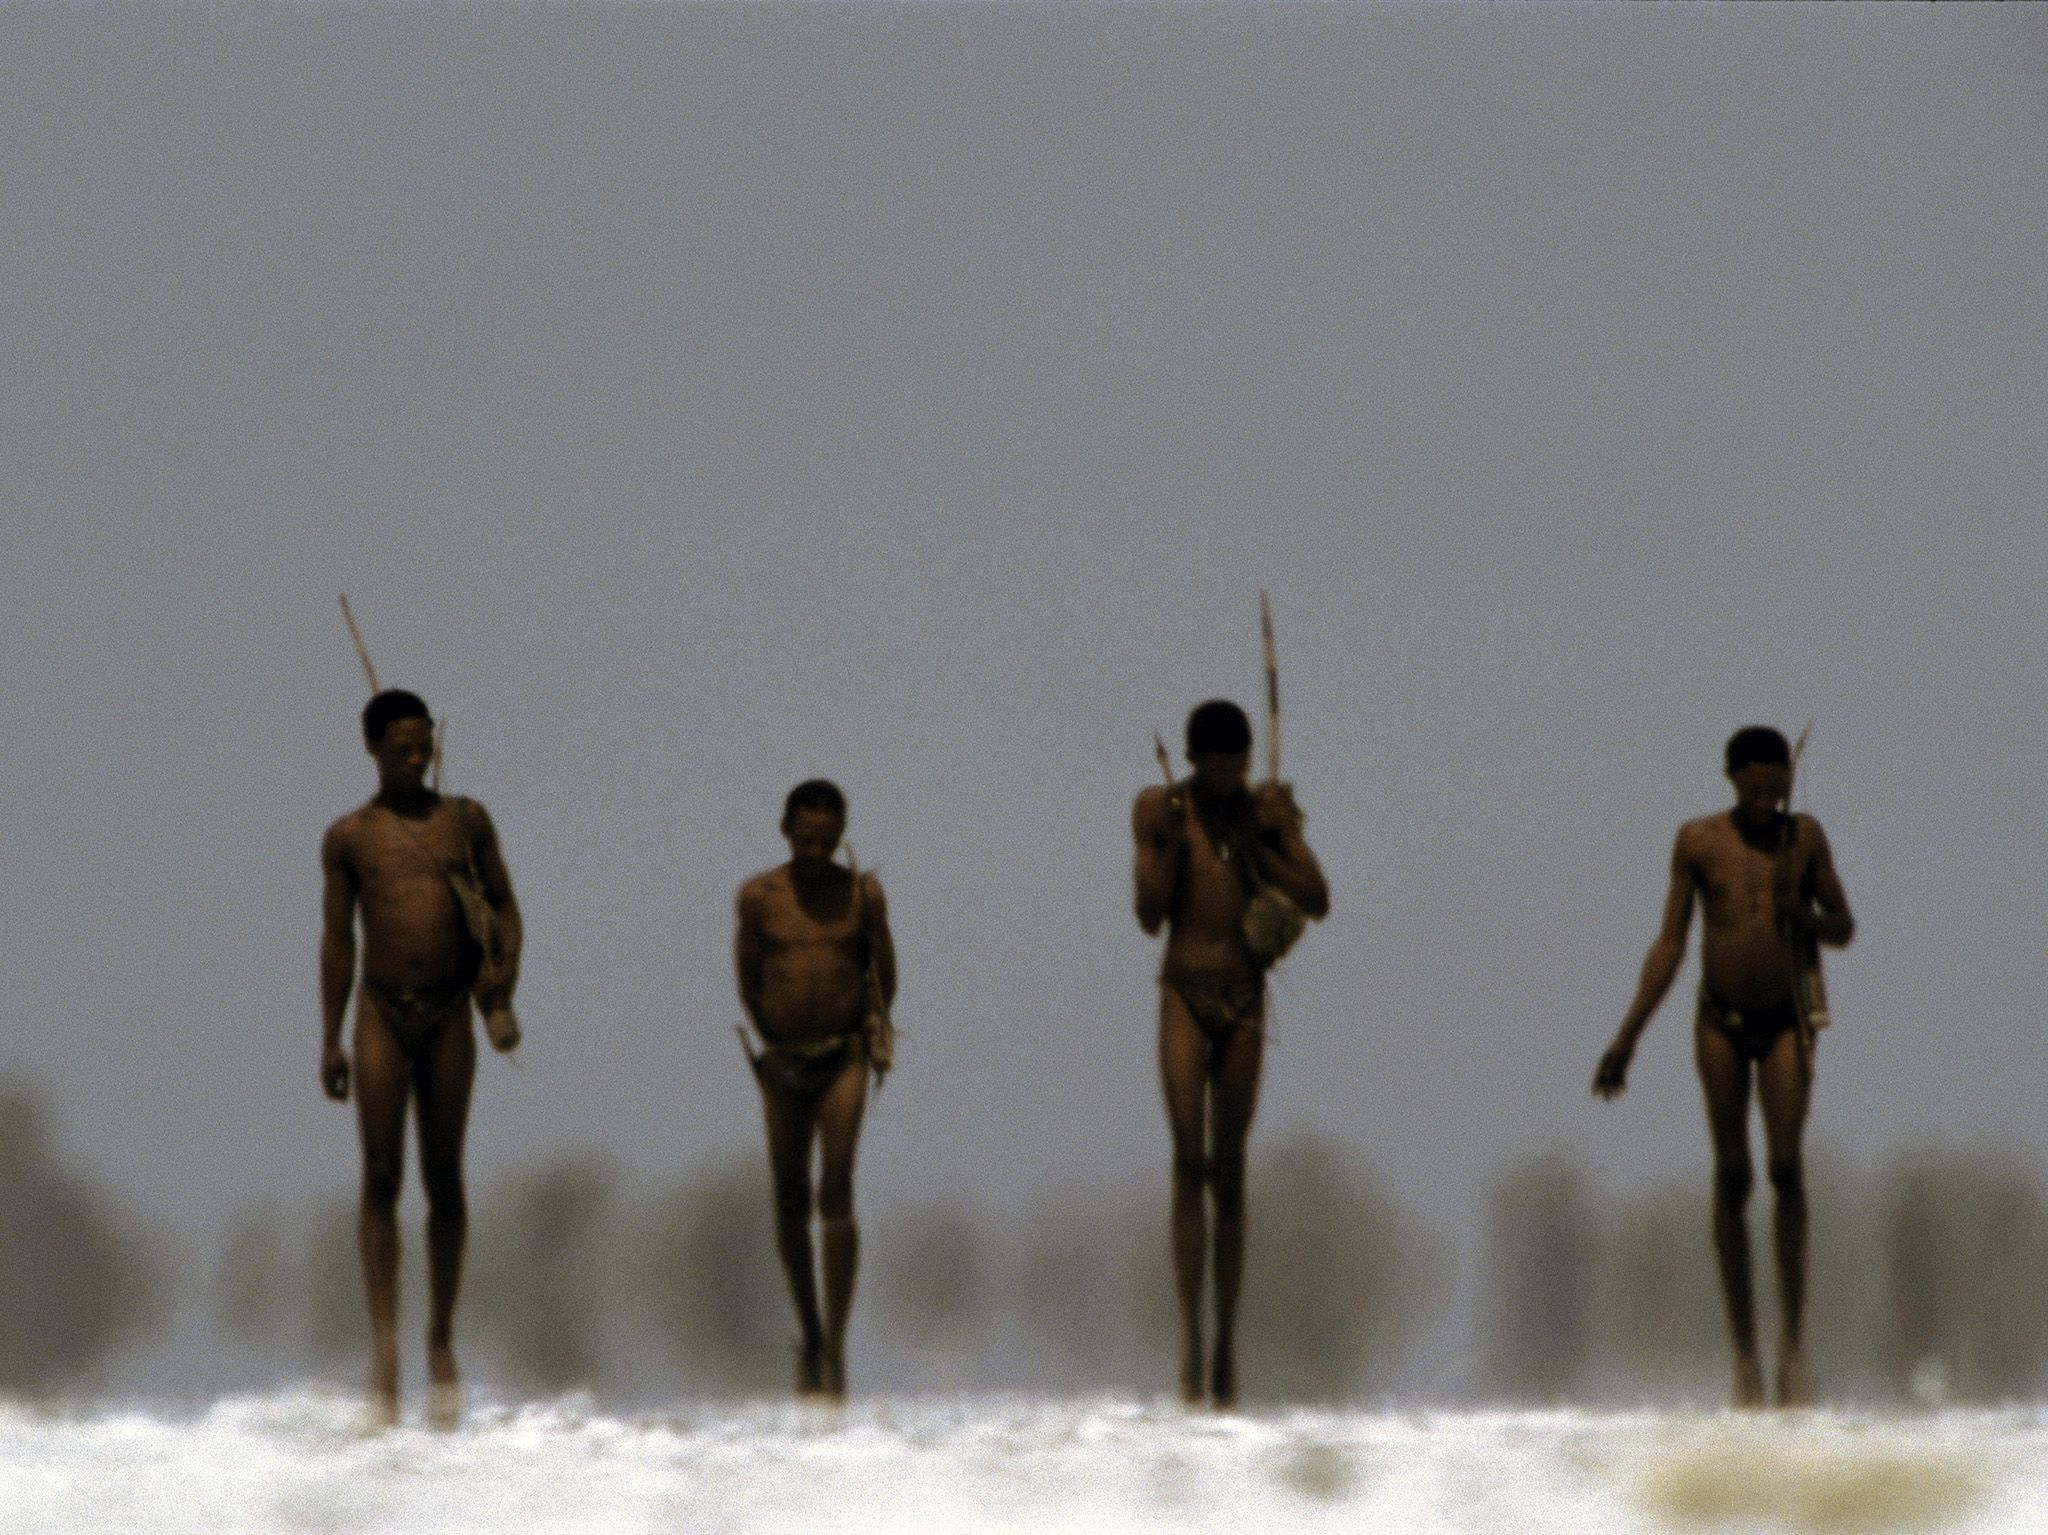 Bushmen armed with bows and arrows walk across a salt pan in Nyae Nyae Conservancy, Namibia.... [Photo of the day - February 2017]